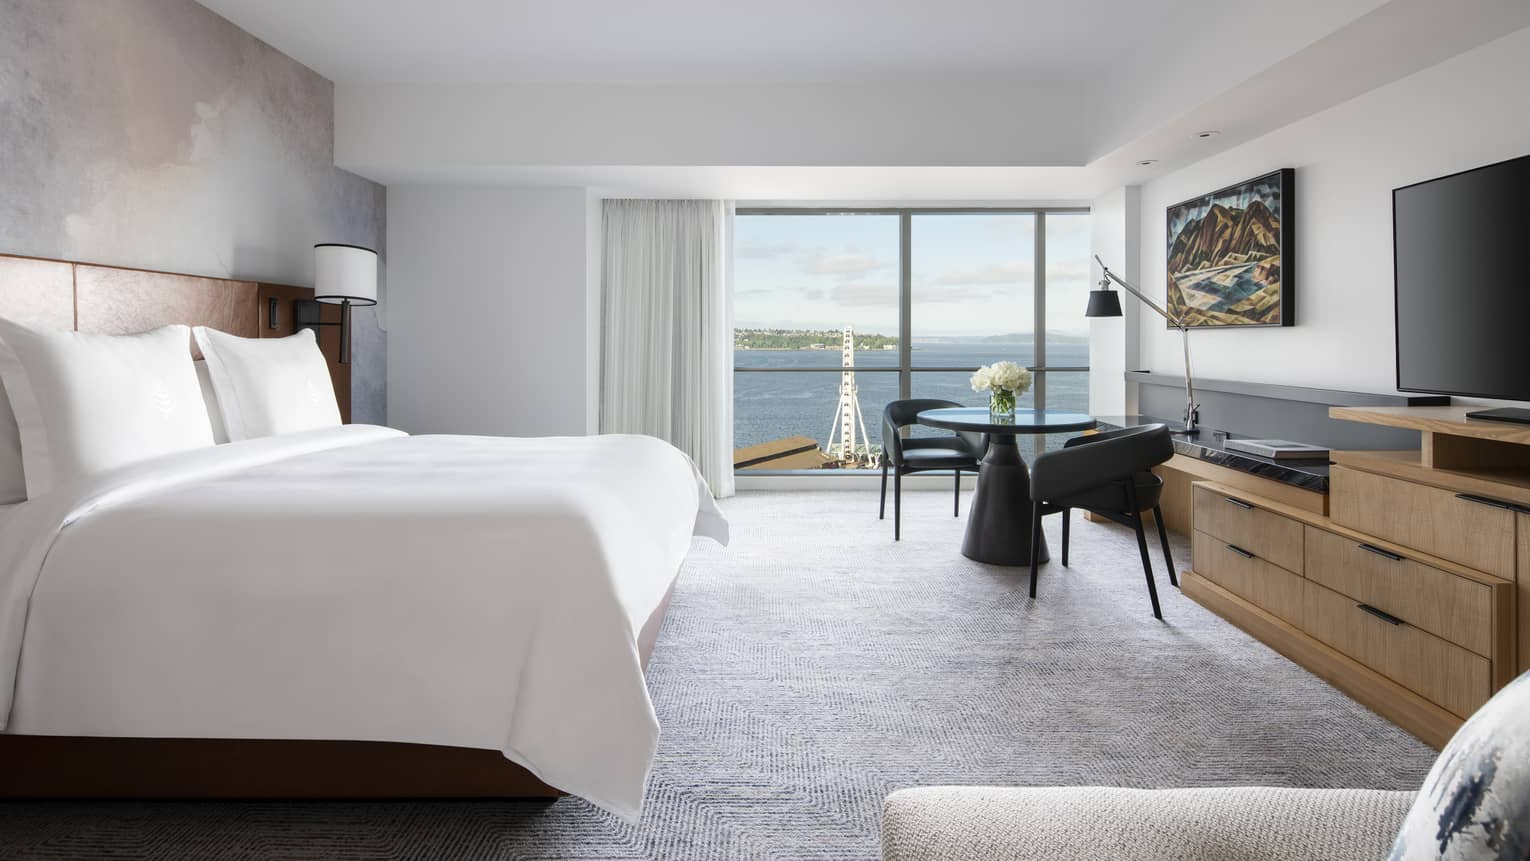 Deluxe Bay-View Rooms offer views of Elliott Bay through floor-to-ceiling windows